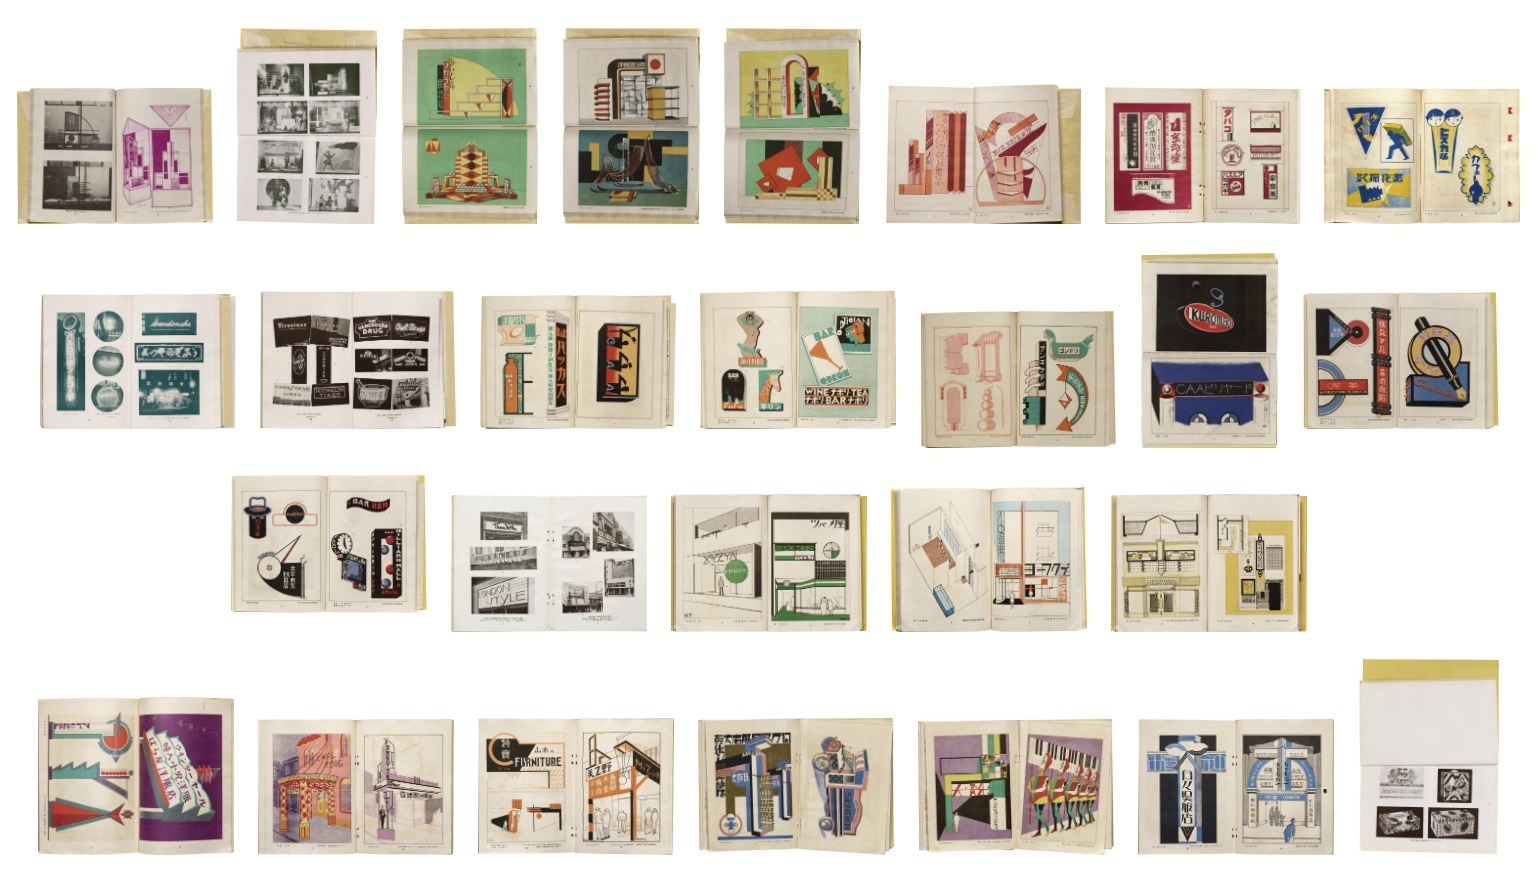 The Complete Commercial Artist Letterform Archive 2